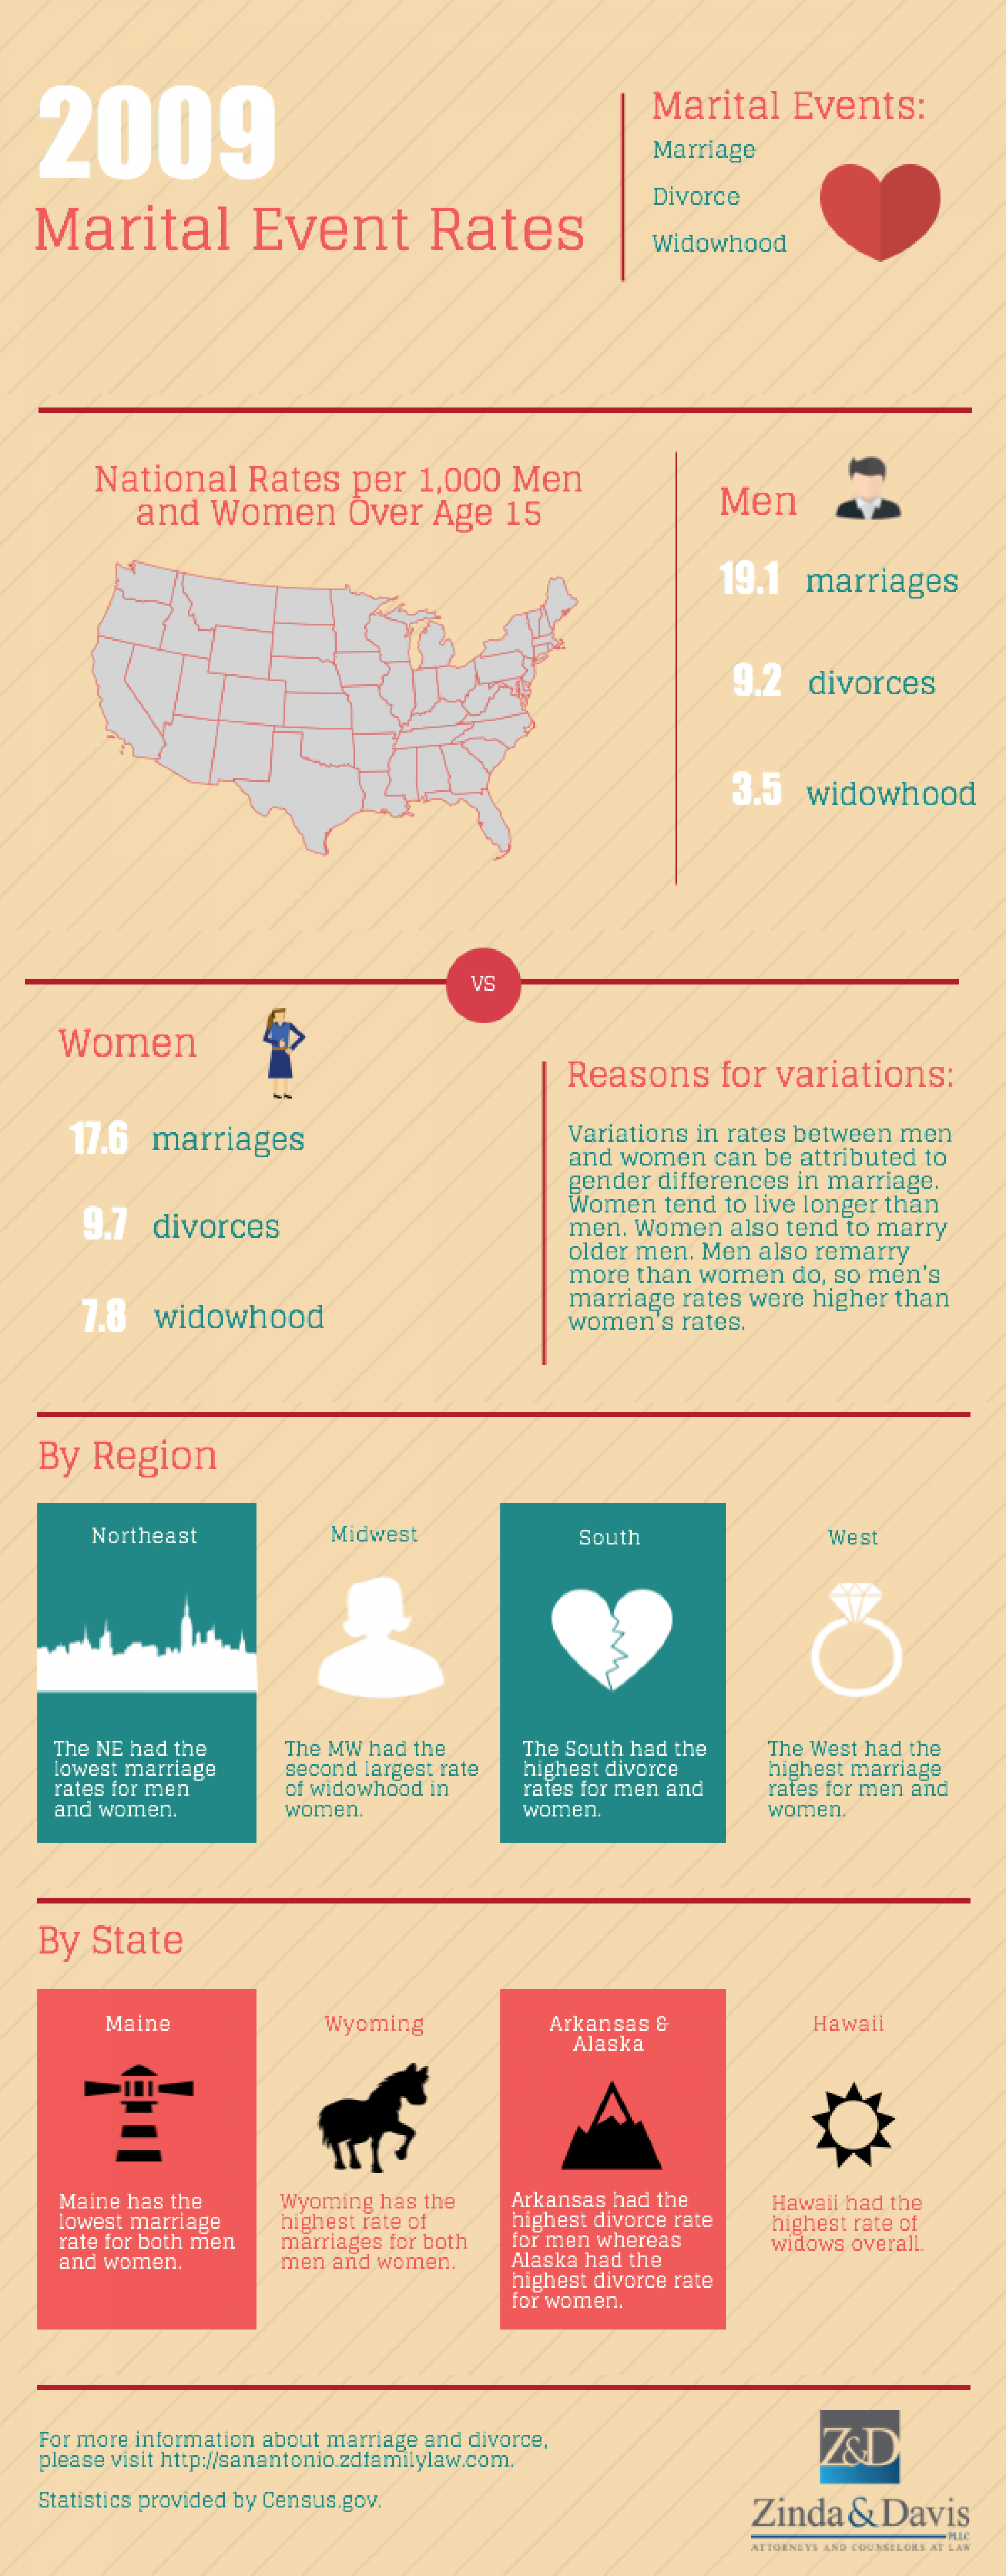 Marital Event Rates Infographic